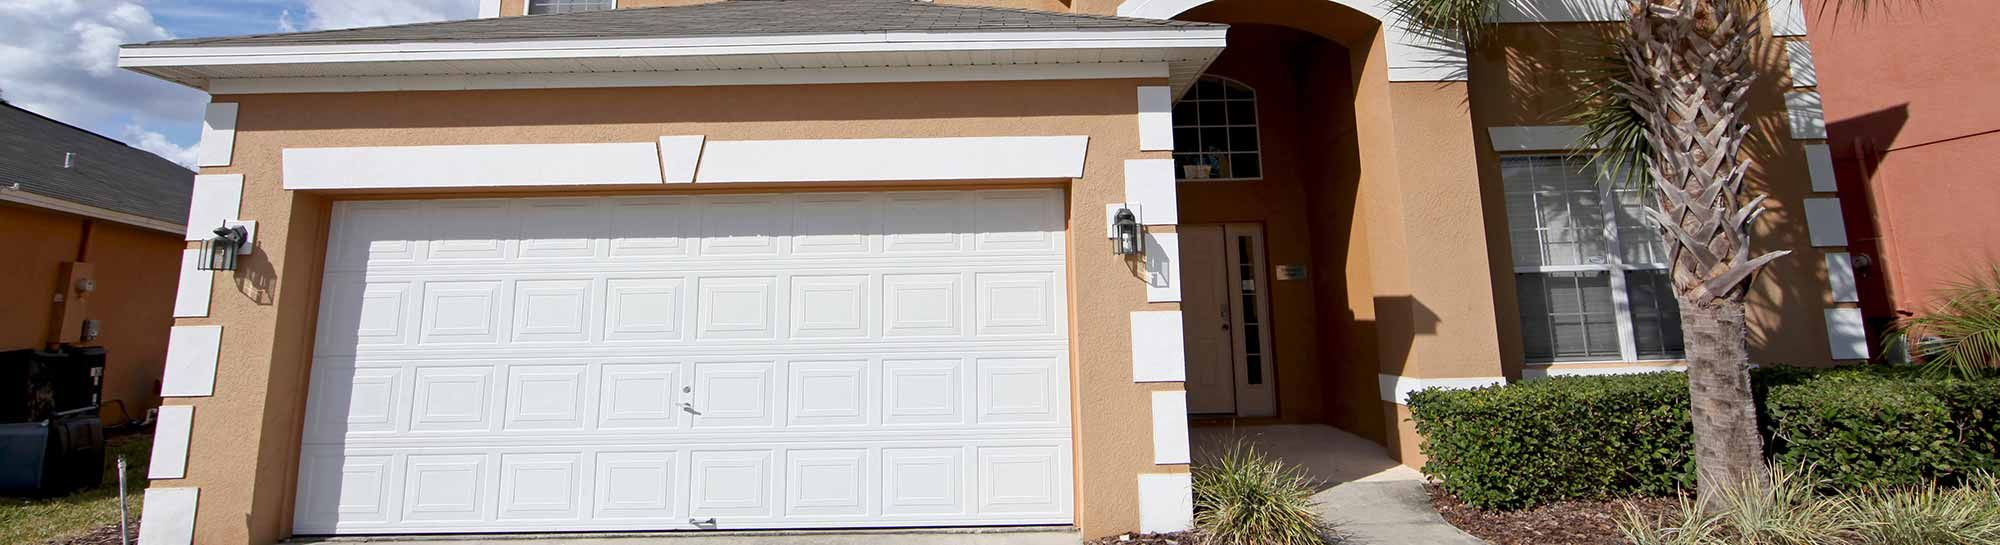 Hire Authority Garage Doors Is A Prime Garage Door Service And Sales Provider In South Florida They Garage Door Installation Garage Doors Garage Service Door